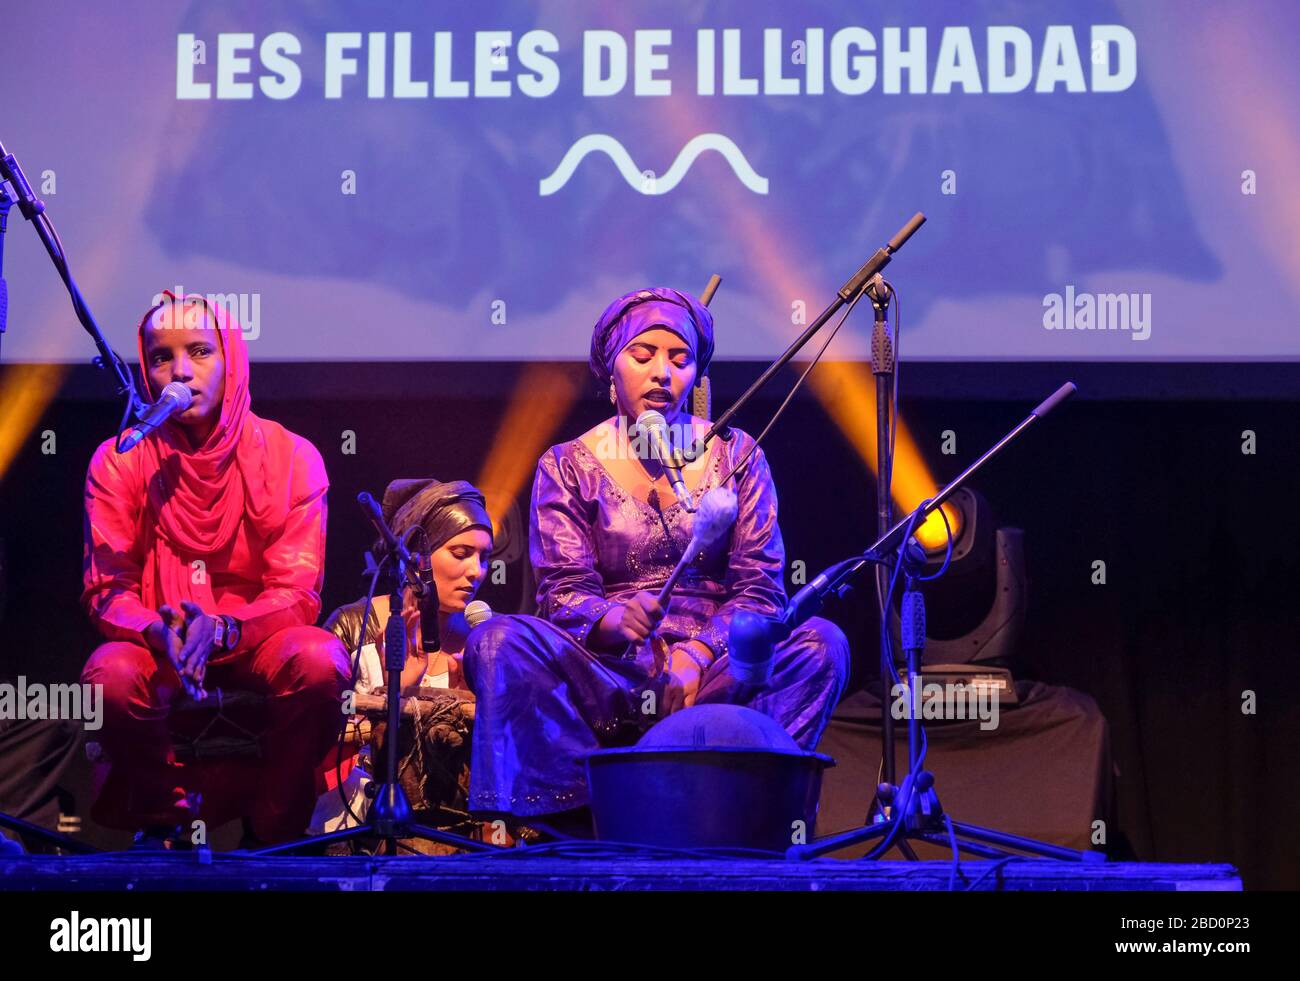 Les Filles De Illighadad High Resolution Stock Photography and ...